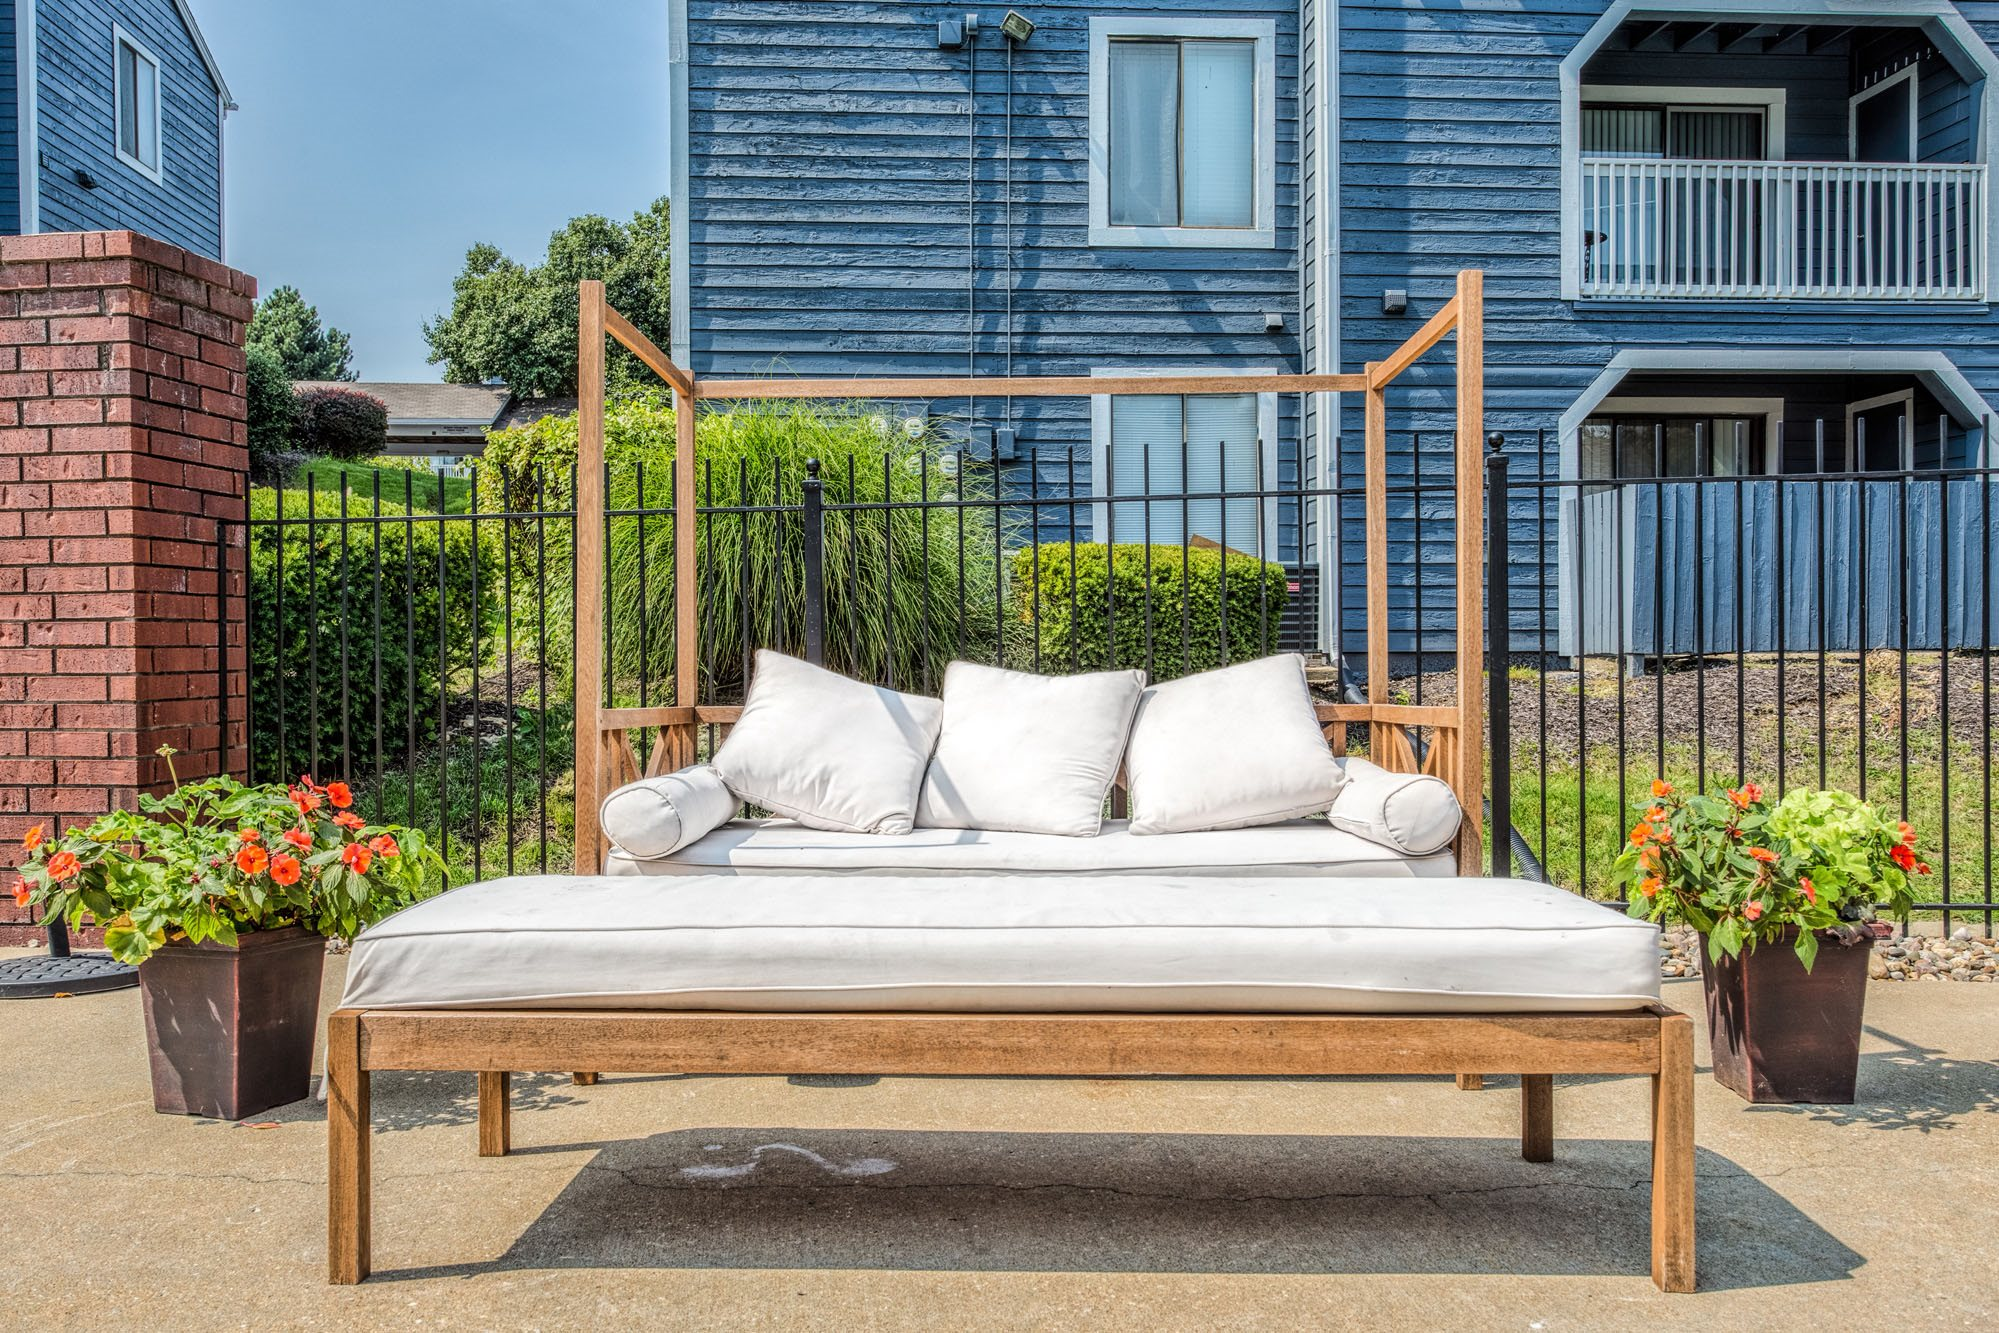 Outdoor Lounge at Perry 81 Apartments in Overland Park, Kansas